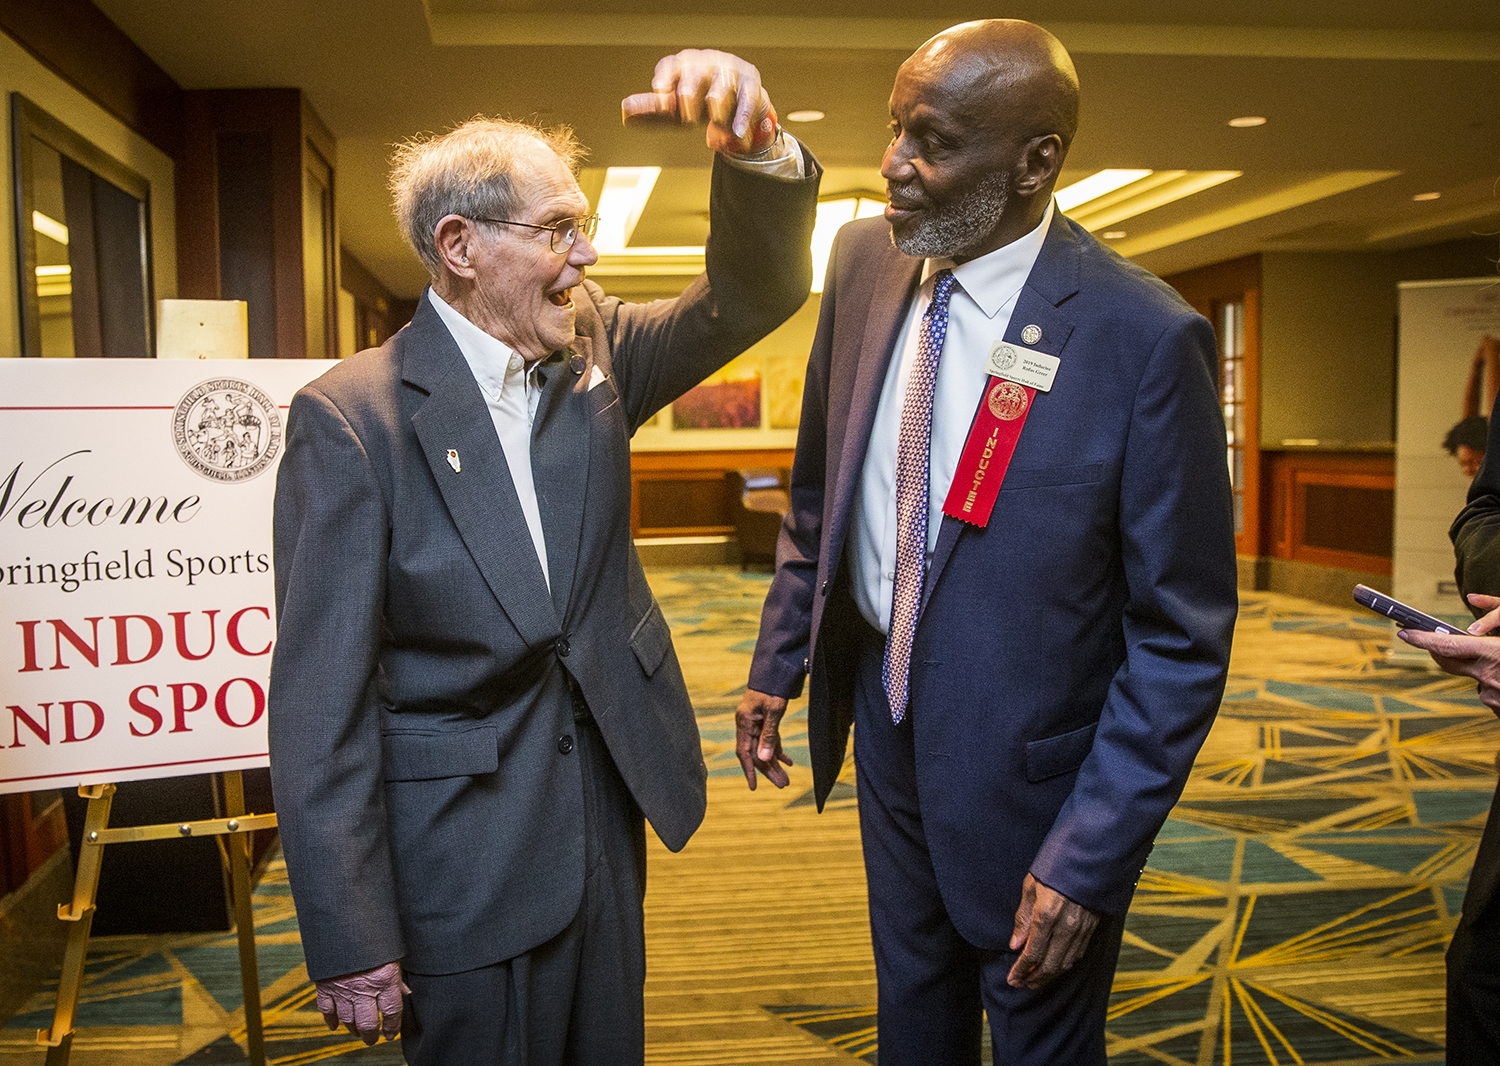 Rufus Greer, right, a 2019 Springfield Sports Hall of Fame inductee and 1971 Lanphier graduate, reminiscences with his former coach Arlyn Lober, left, during the 29th annual Springfield Sports Hall of Fame Banquet and Induction Ceremonies at the Crowne Plaza, Monday, April 8, 2019, in Springfield, Ill. [Justin L. Fowler/The State Journal-Register]